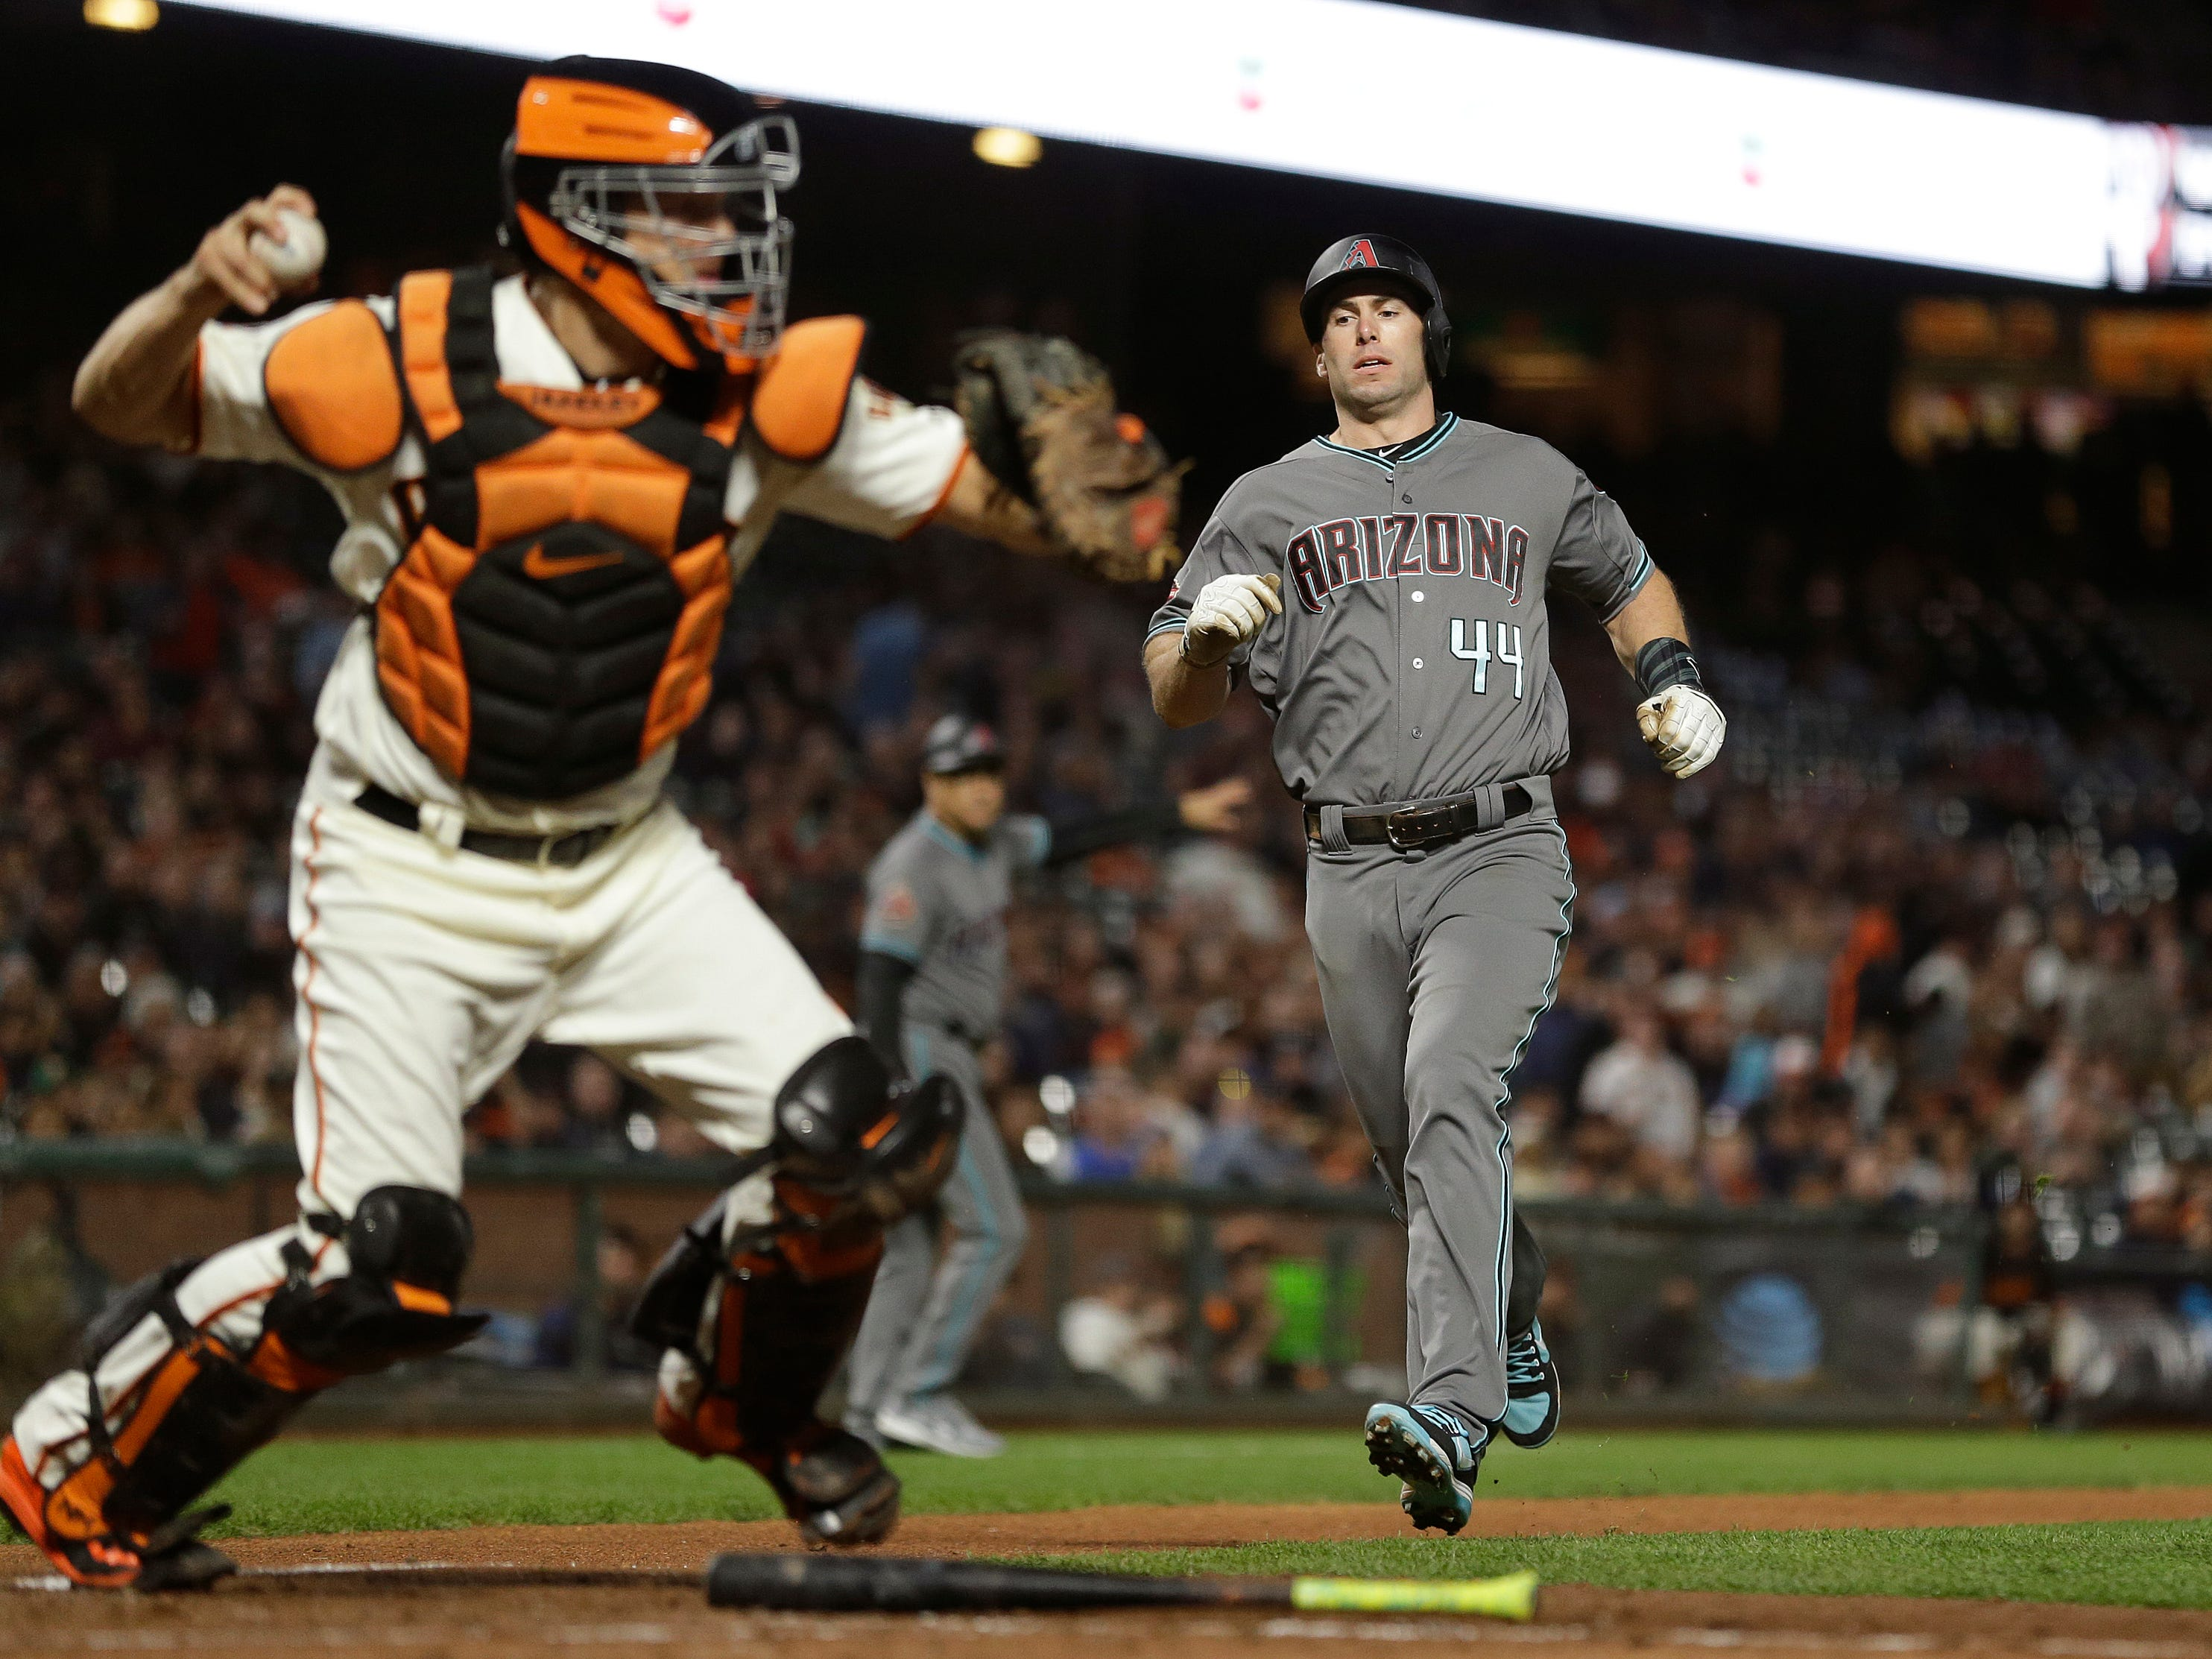 Arizona Diamondbacks' Paul Goldschmidt, right, is forced out at home plate on a fielder's choice as San Francisco Giants catcher Nick Hundley throws the ball to first base in the sixth inning of a baseball game, Tuesday, Aug. 28, 2018, in San Francisco. The Diamondbacks' Ketel Marte was safe at first base on the play.